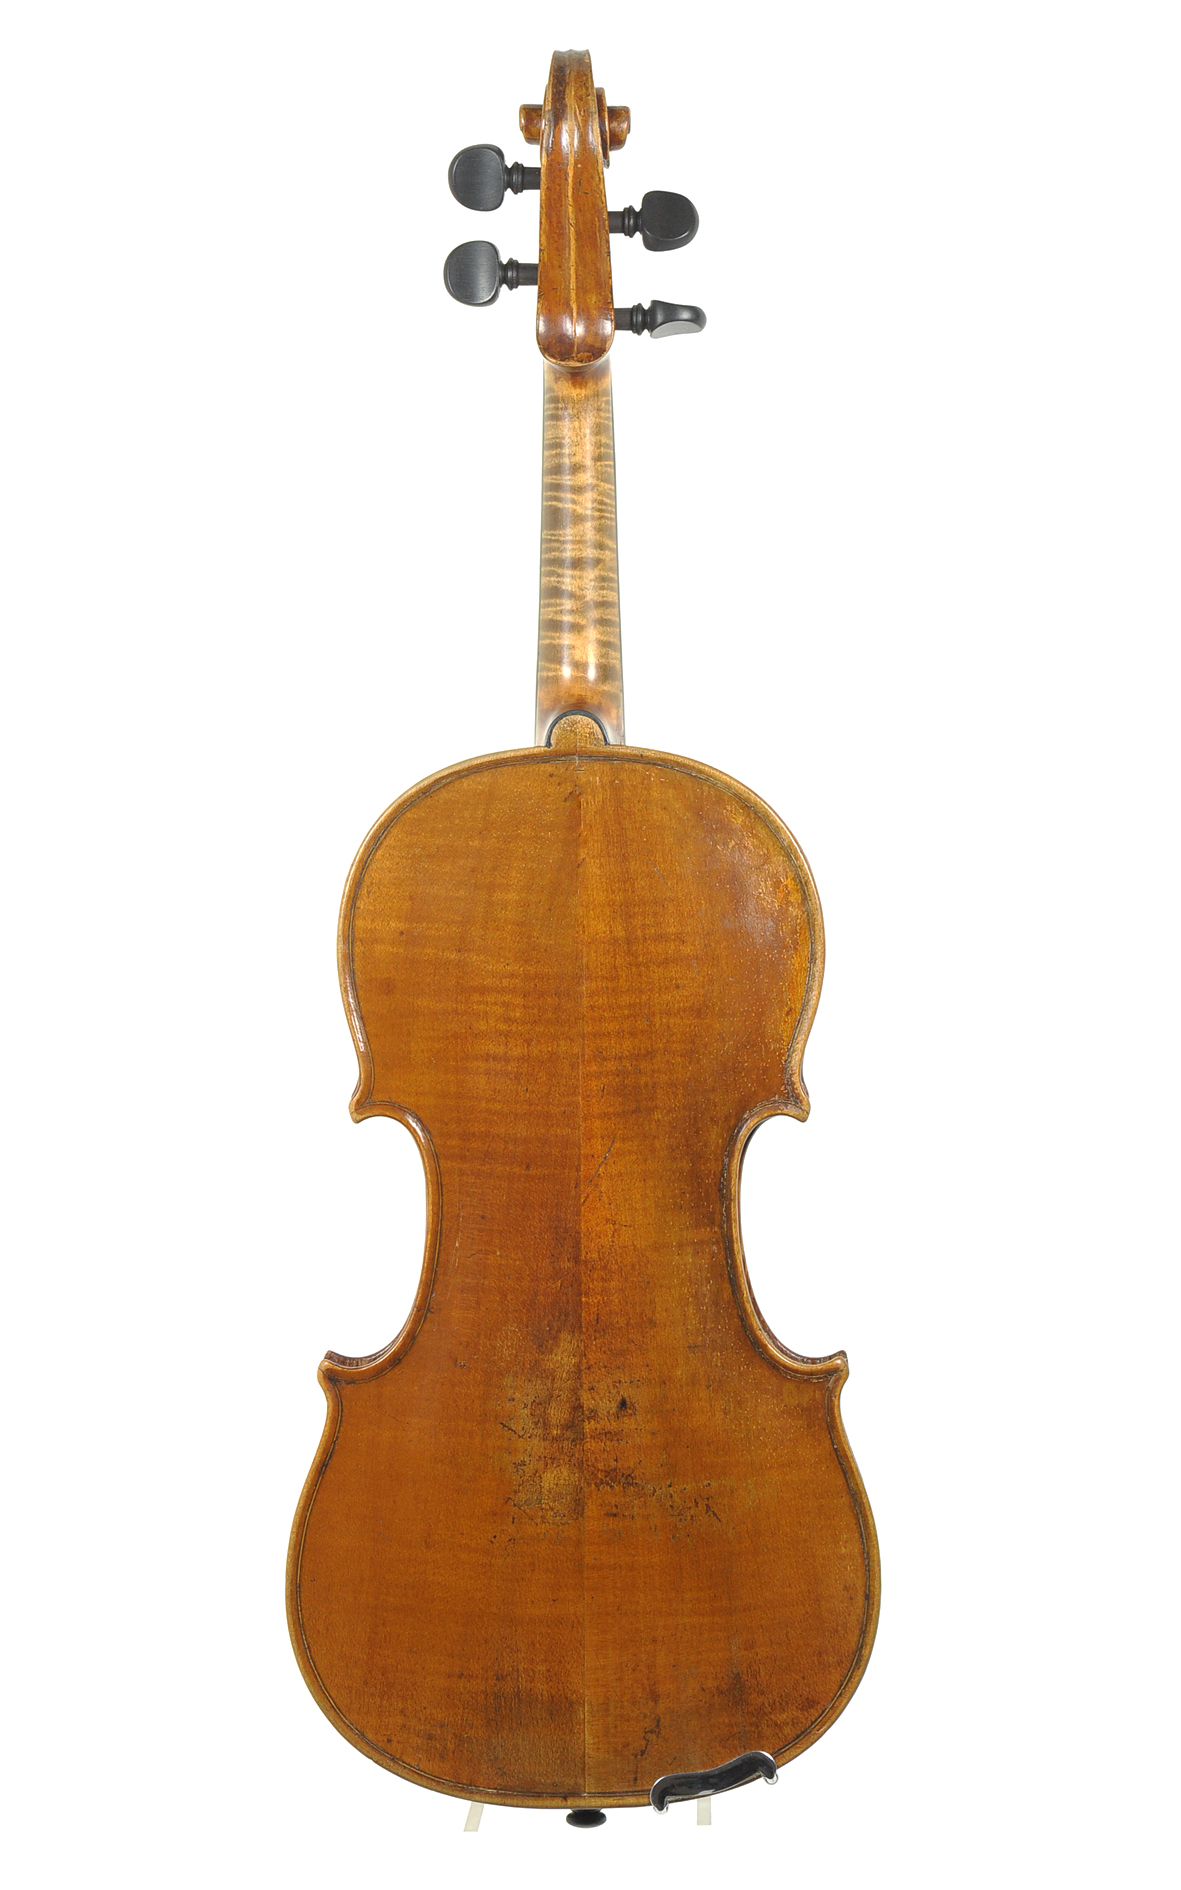 Texts and history about old stringed instruments